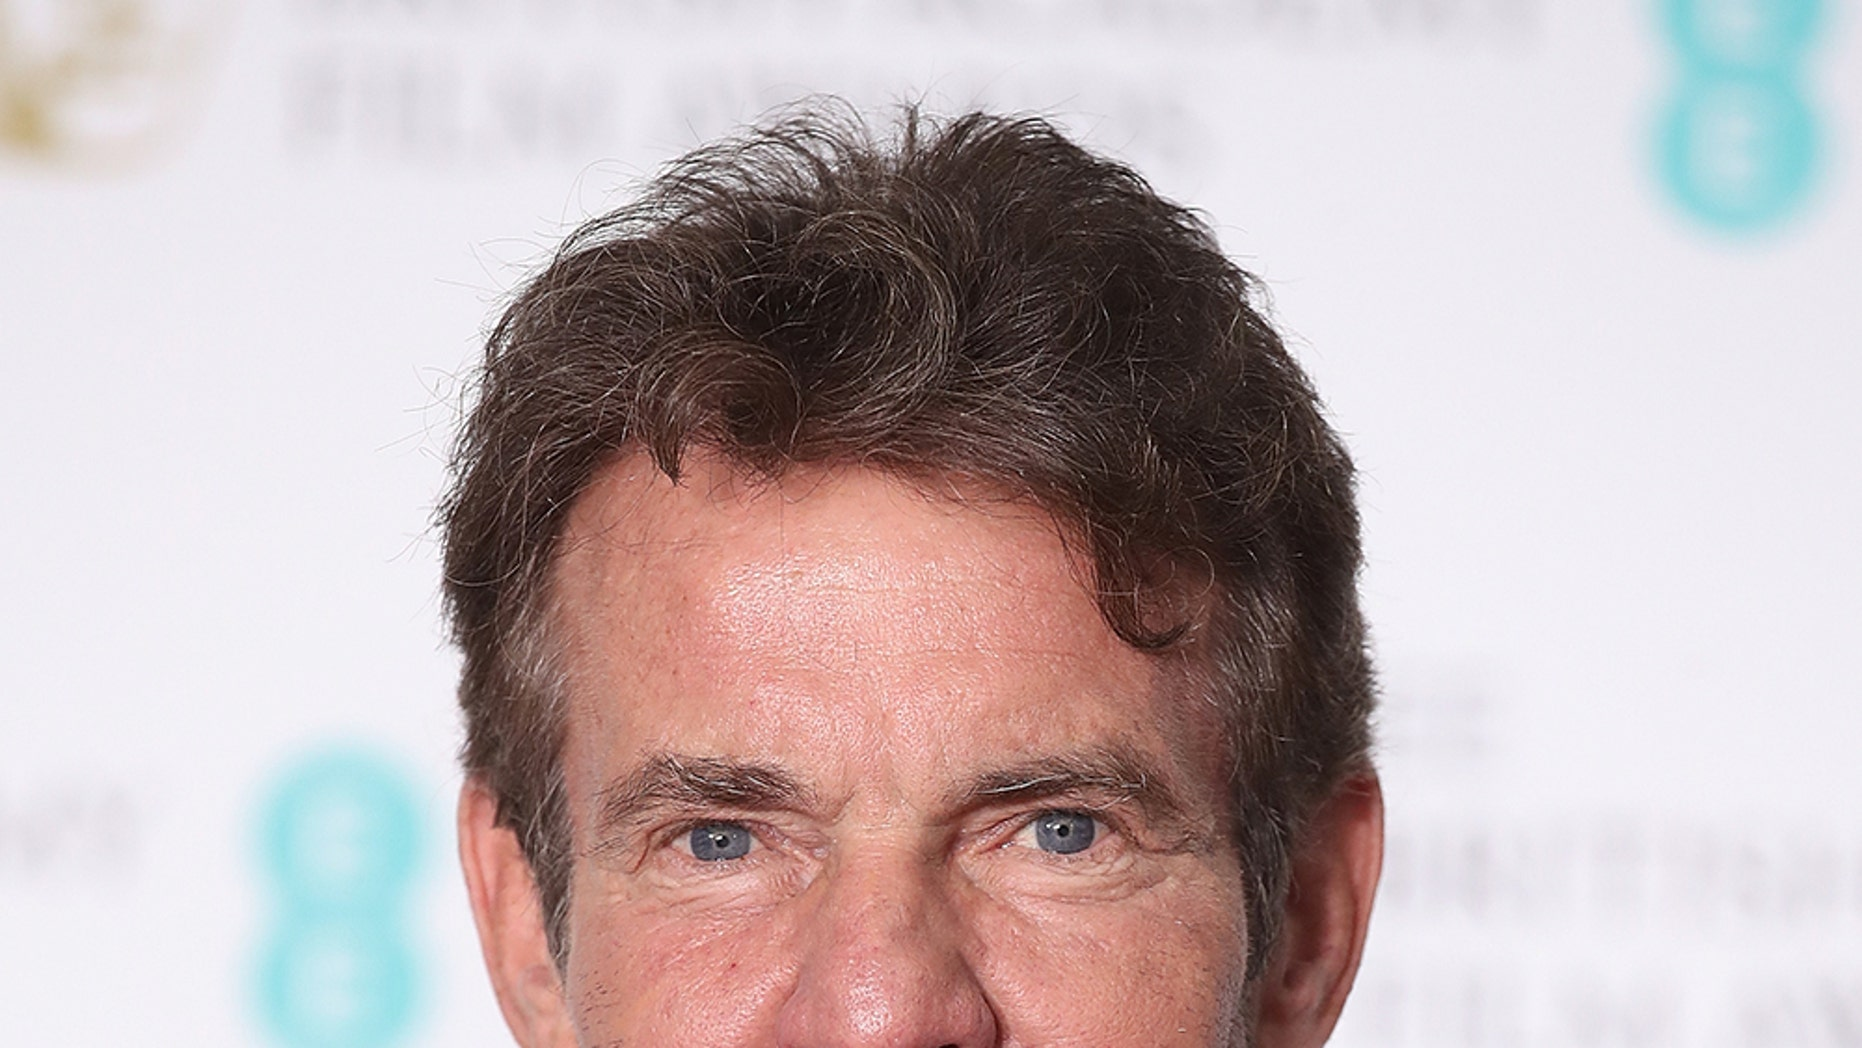 Actor Dennis Quaid is keeping busy taking on a role playing President Ronald Reagan, as well as starring in a new Esurance commercial.